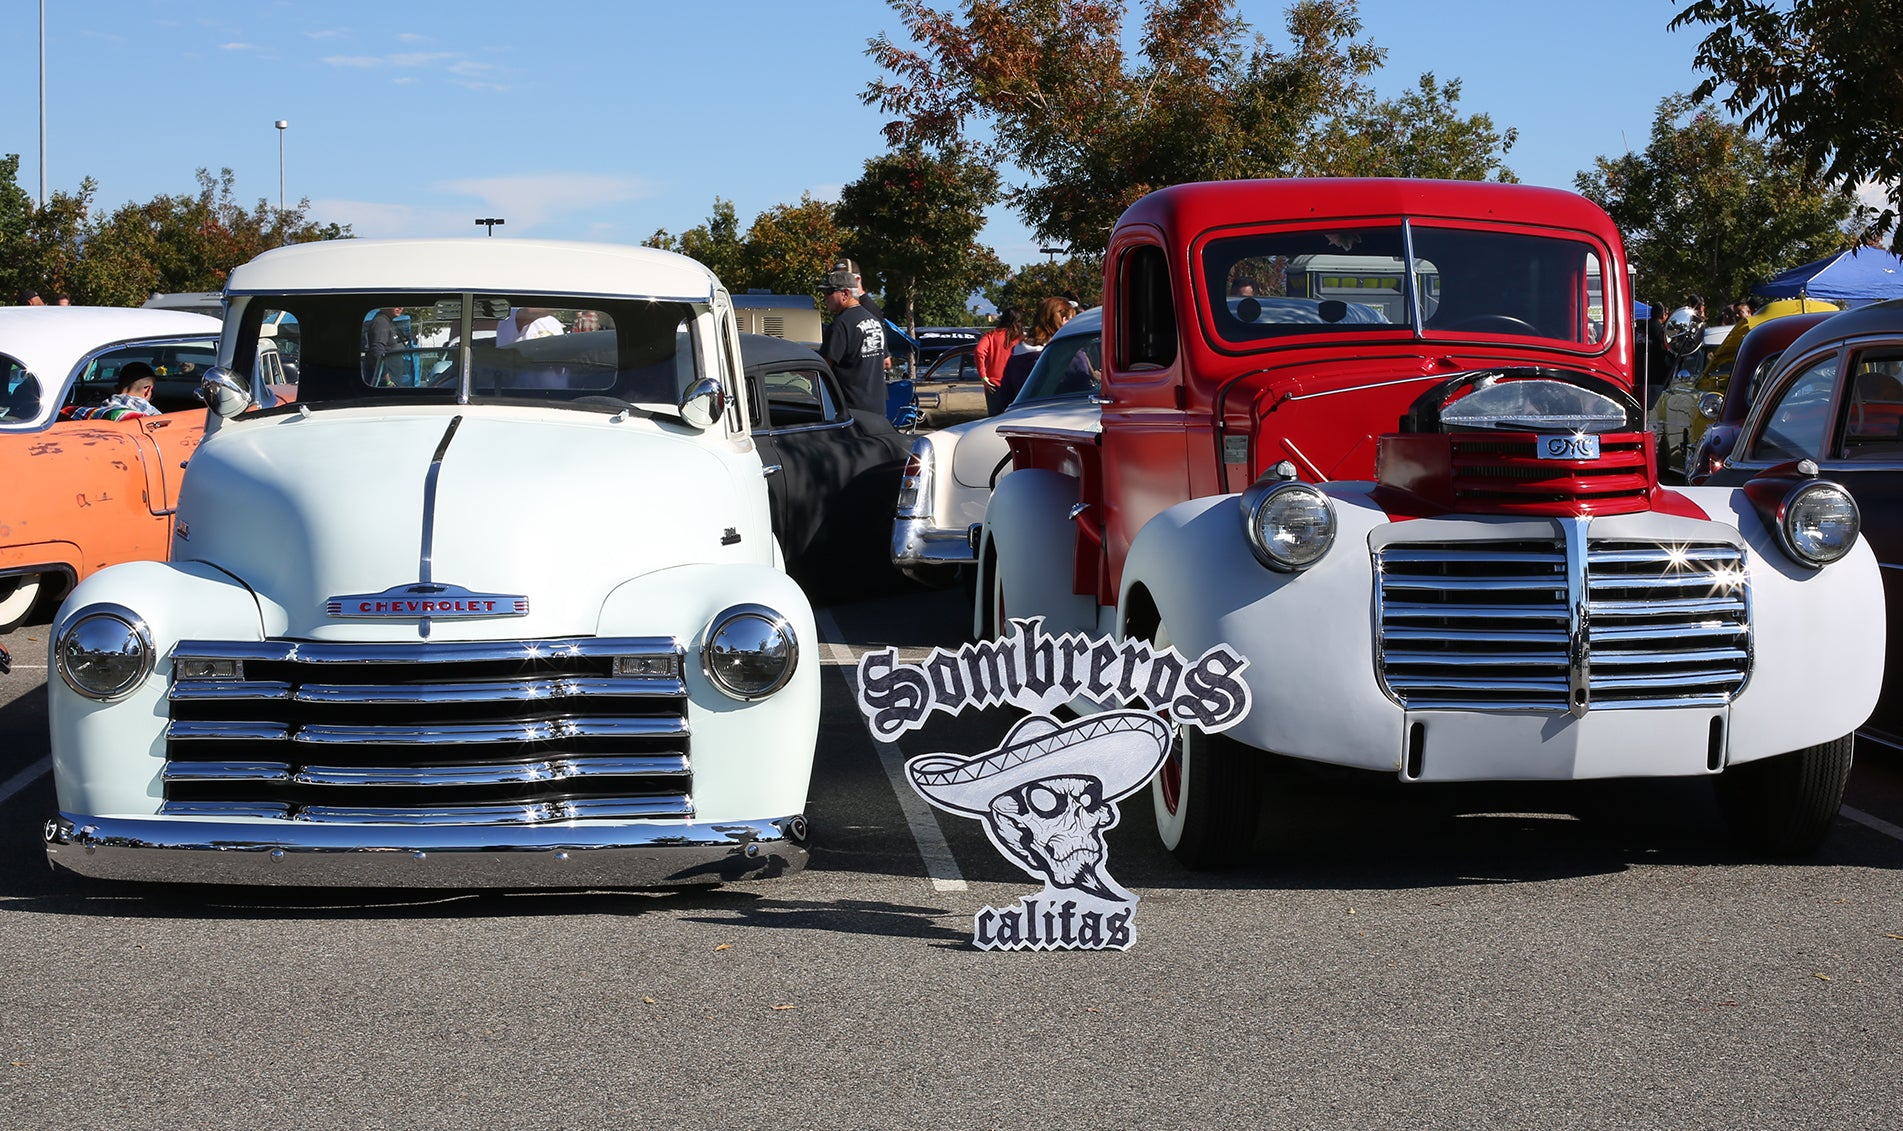 GMC and Chevy truck side by side at Huffarama 2015